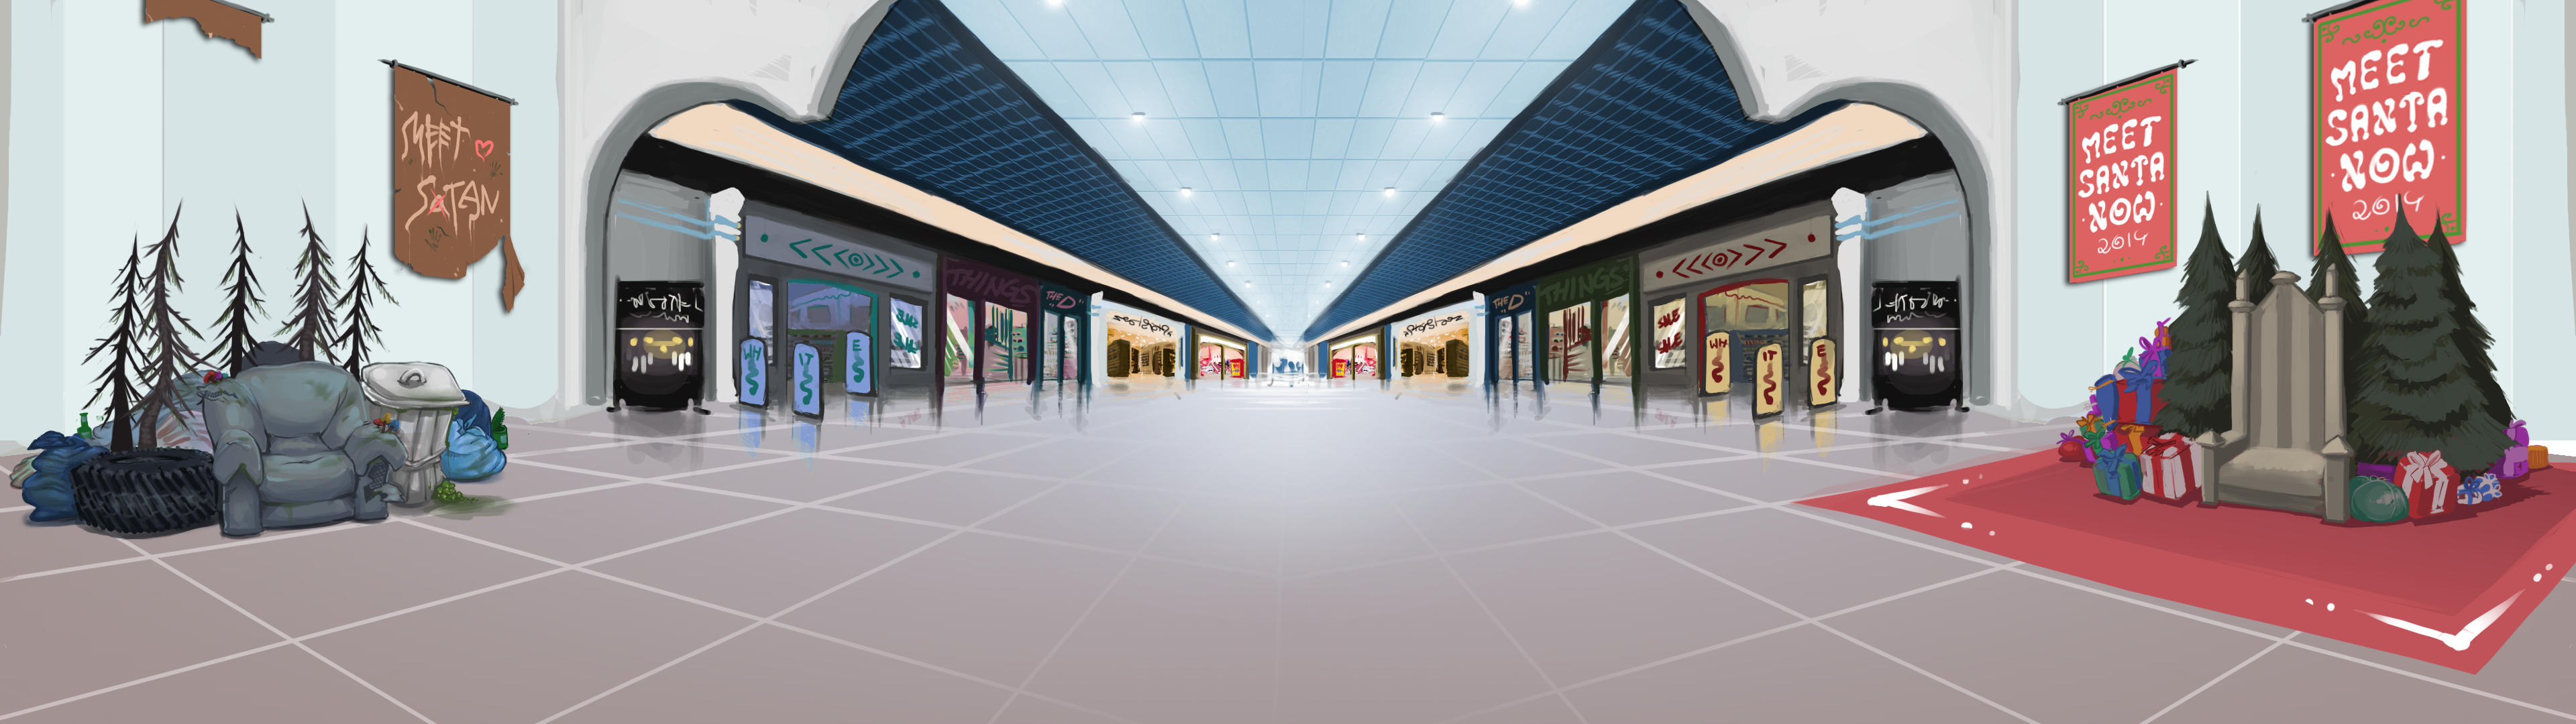 Shopping Mall Background by SpecterWhite on Newgrounds 3840x1080